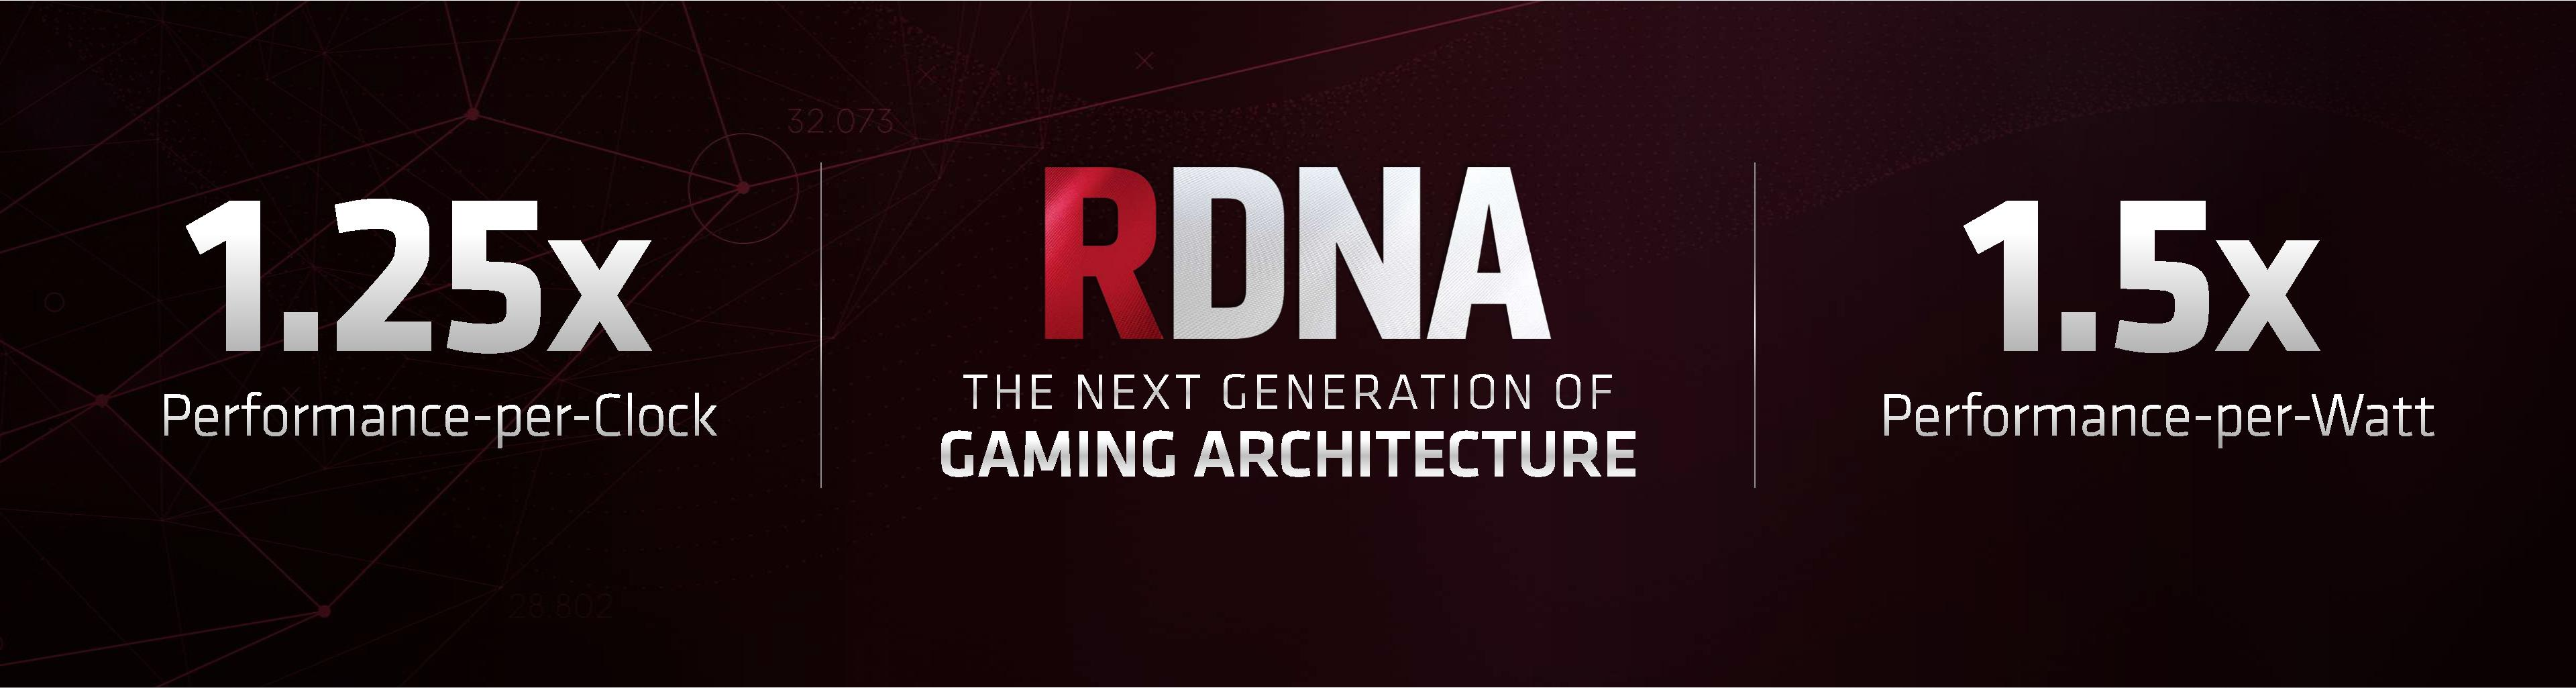 AMD Teases First Navi GPU Products: RX 5700 Series Launches